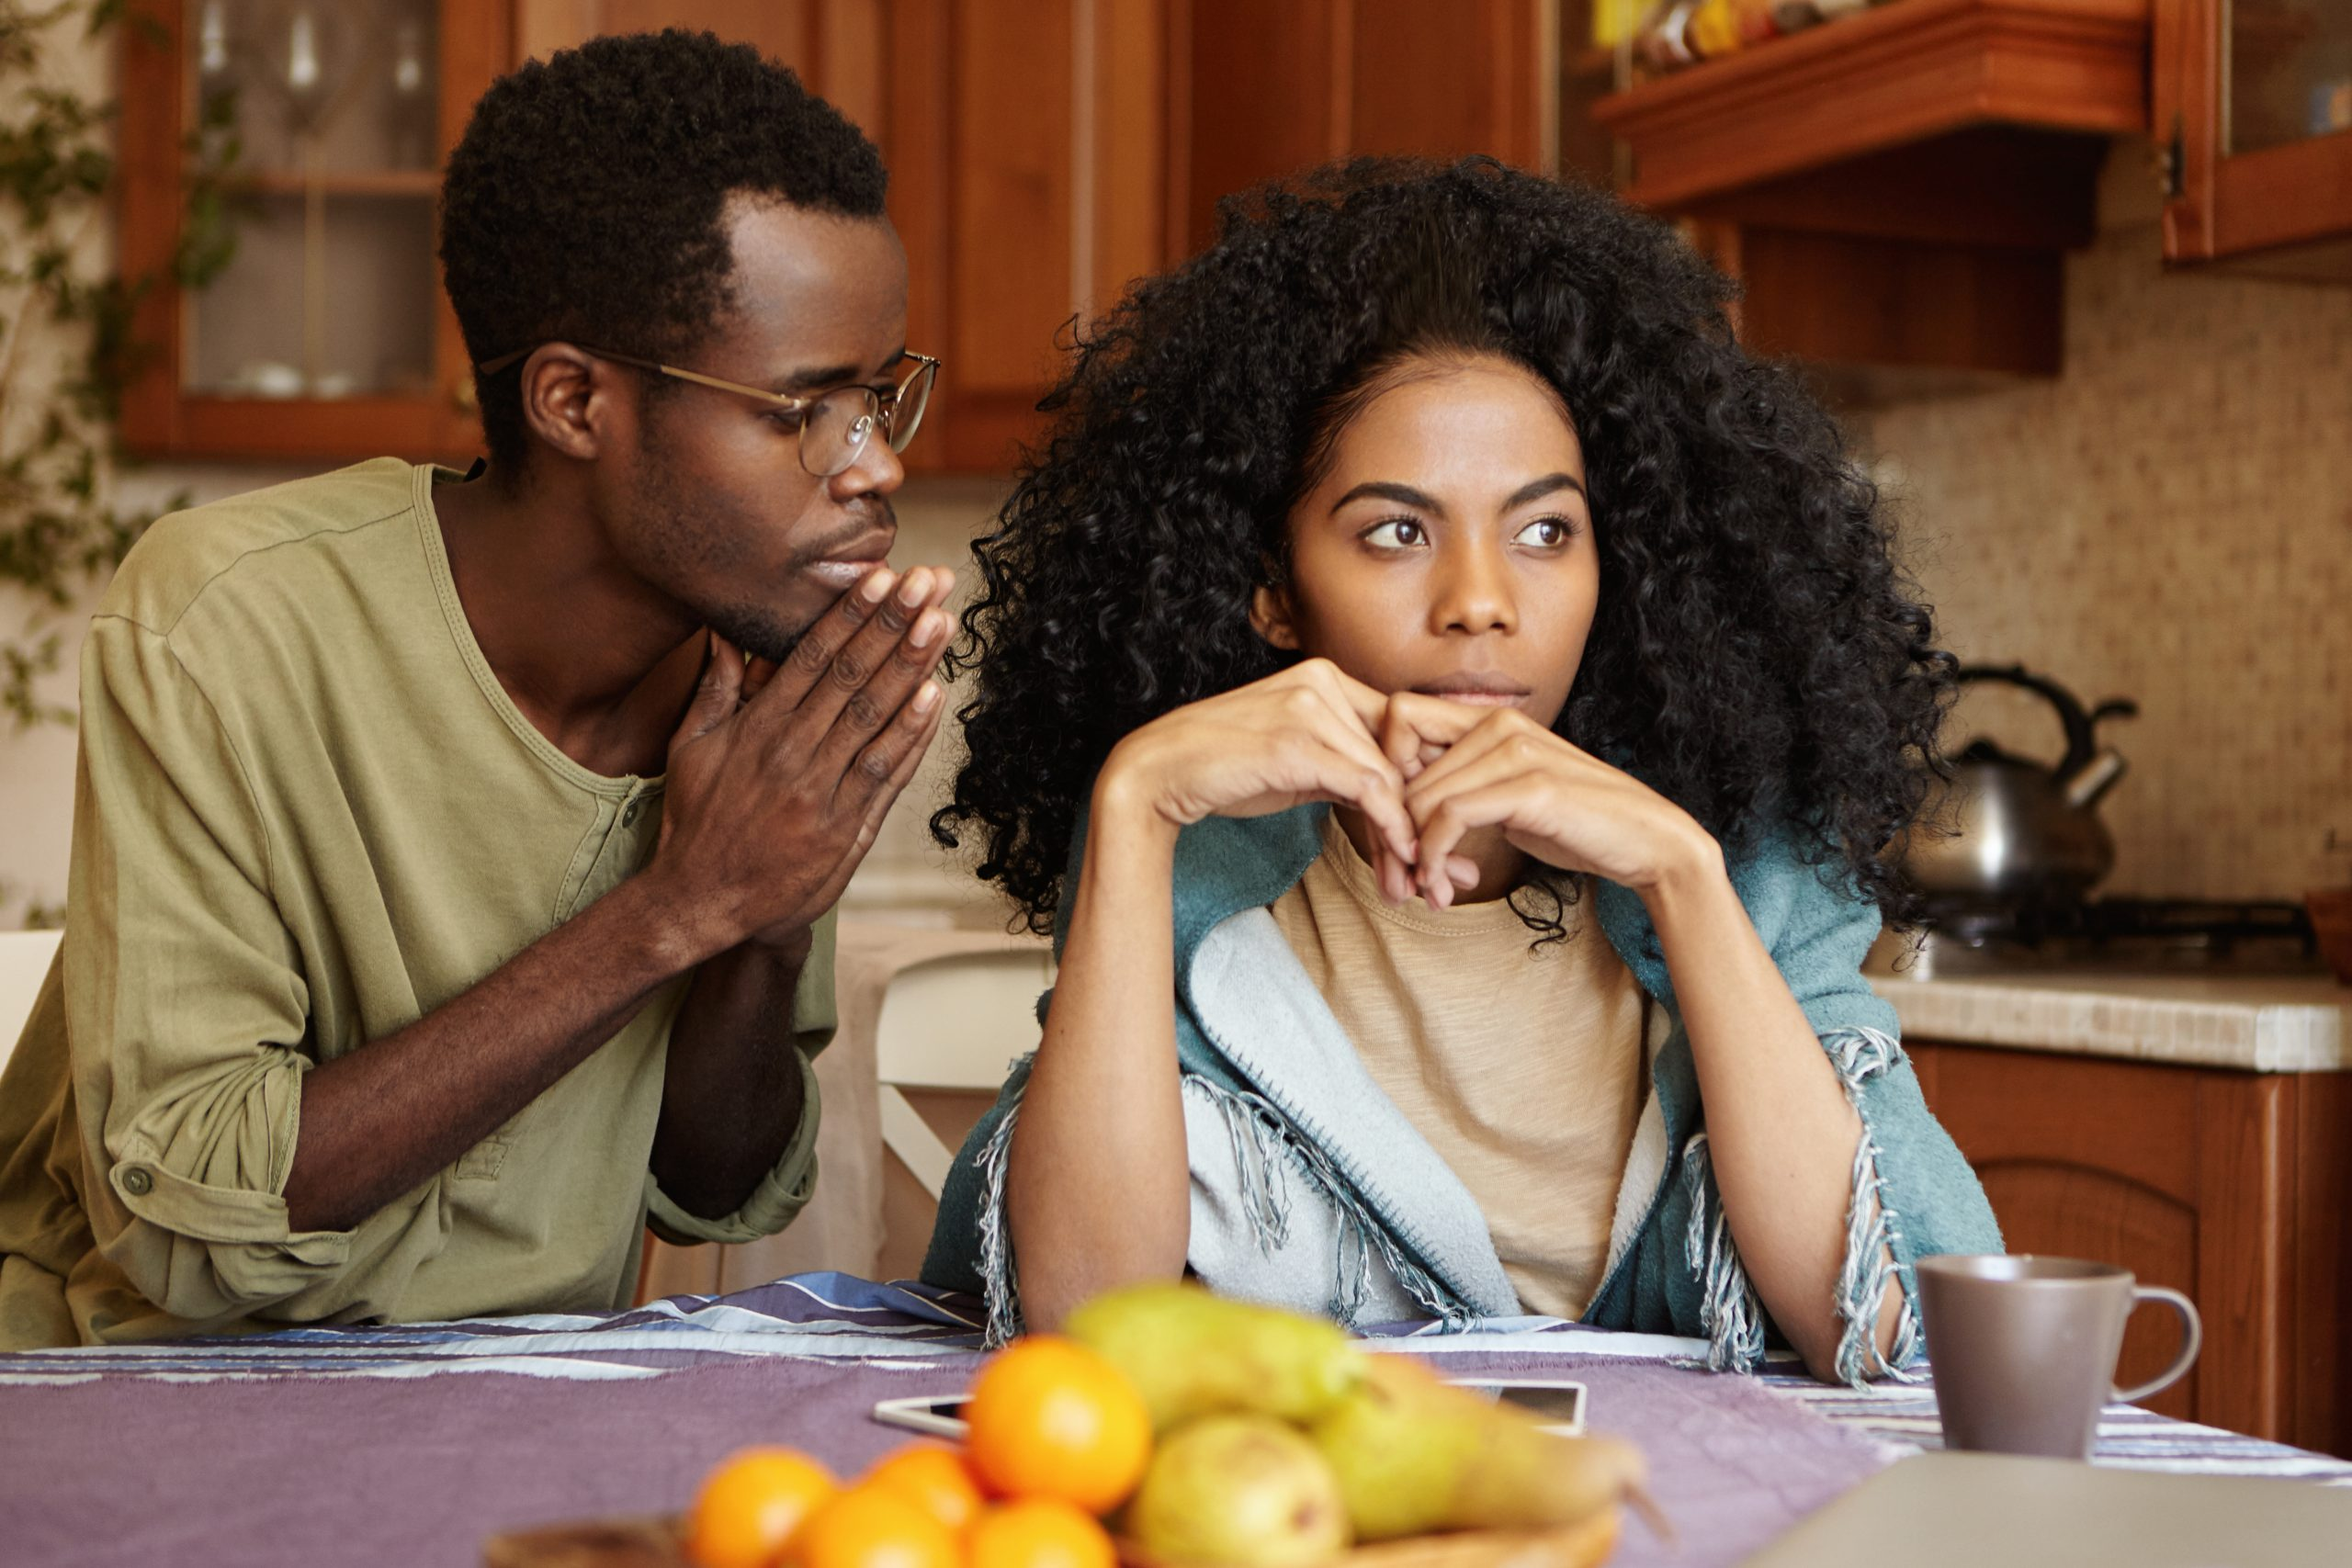 THINGS YOU SHOULD NOT SACRIFICE IN A RELATIONSHIP